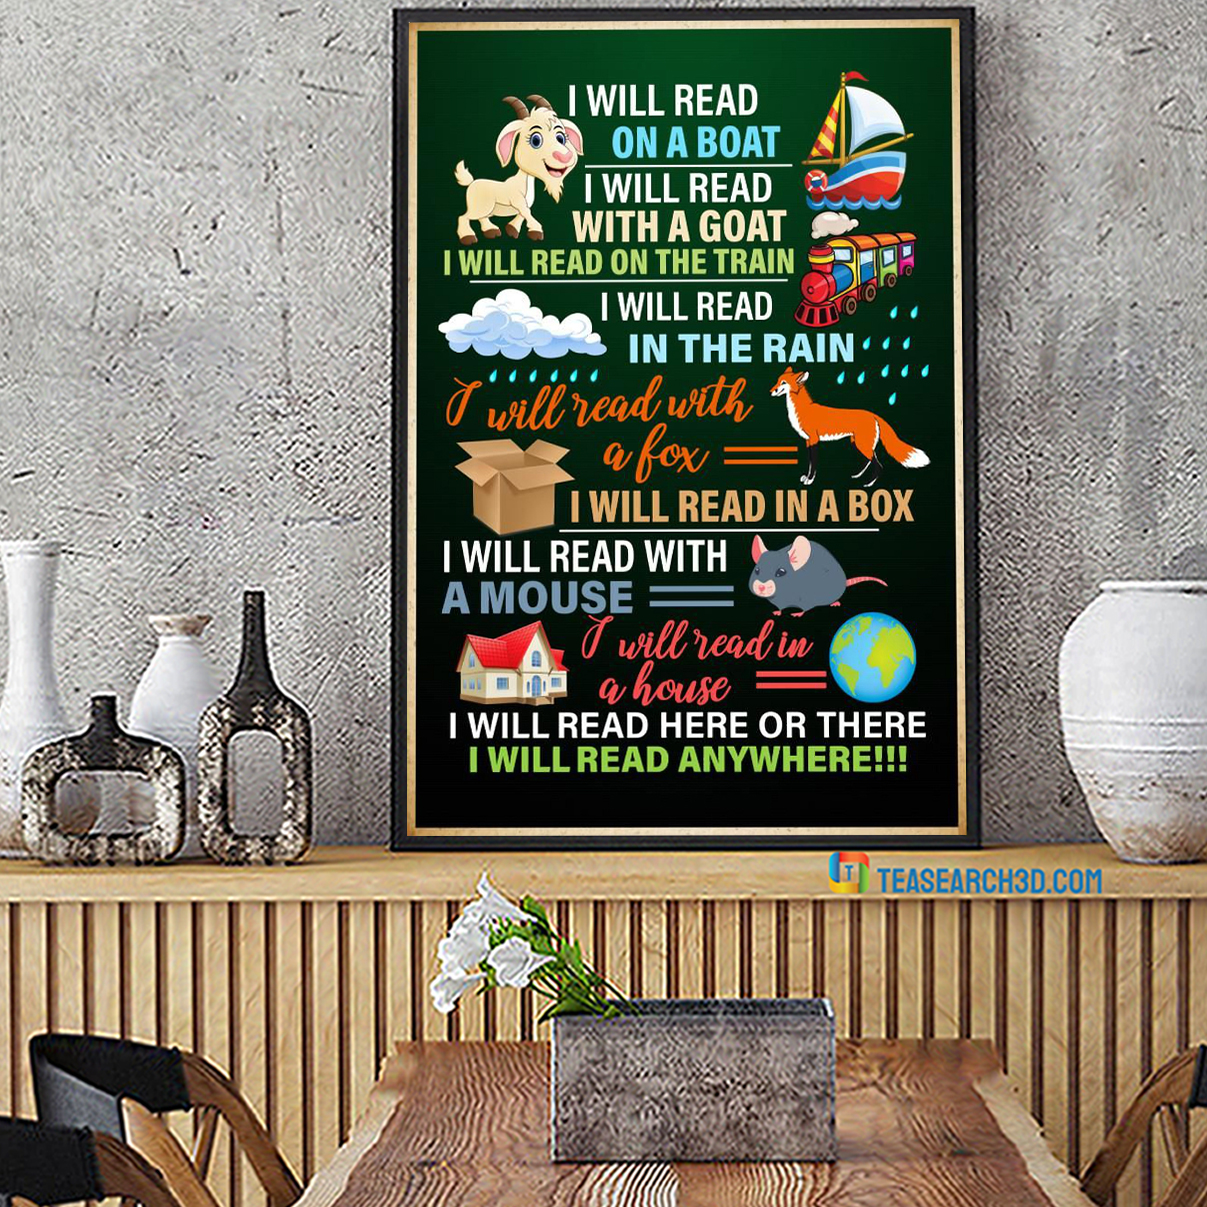 I will read on a boat I will read with a goat poster A3